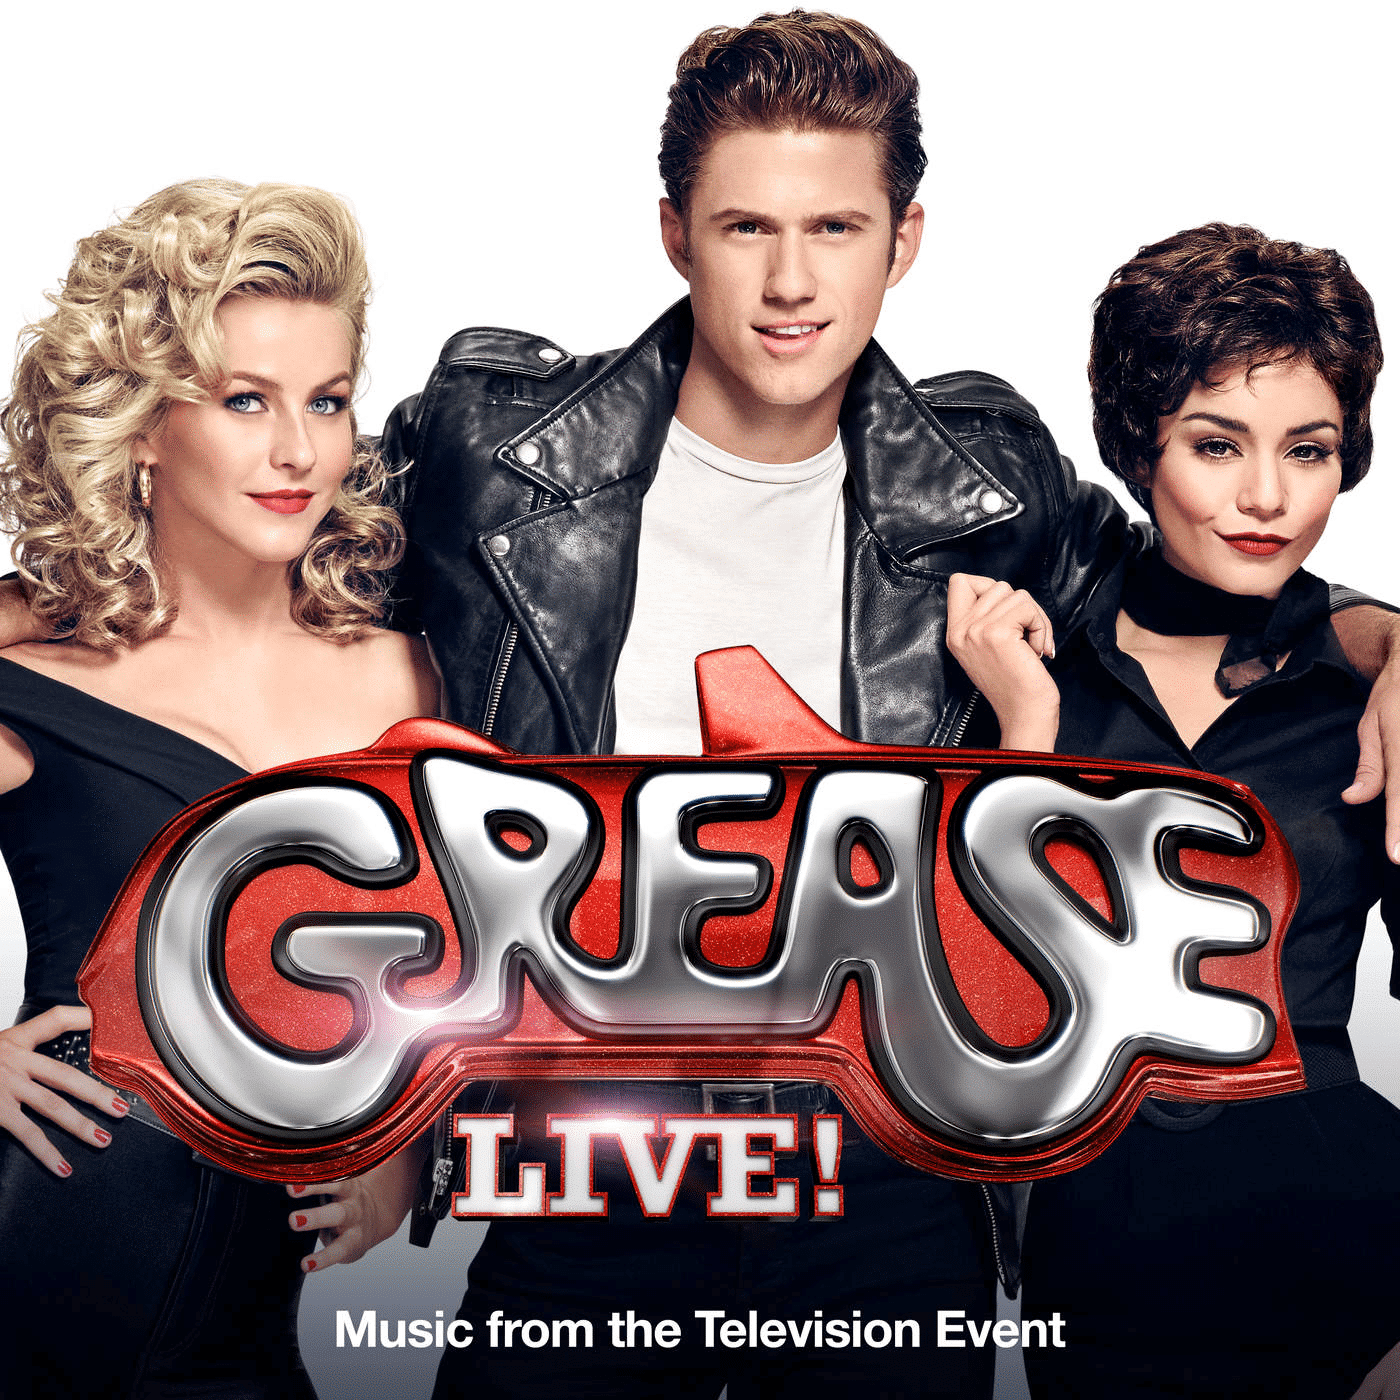 Photo of Grease: ecco le performance del remake (inclusi Jessie J, DNCE, Carly Rae Jepsen)